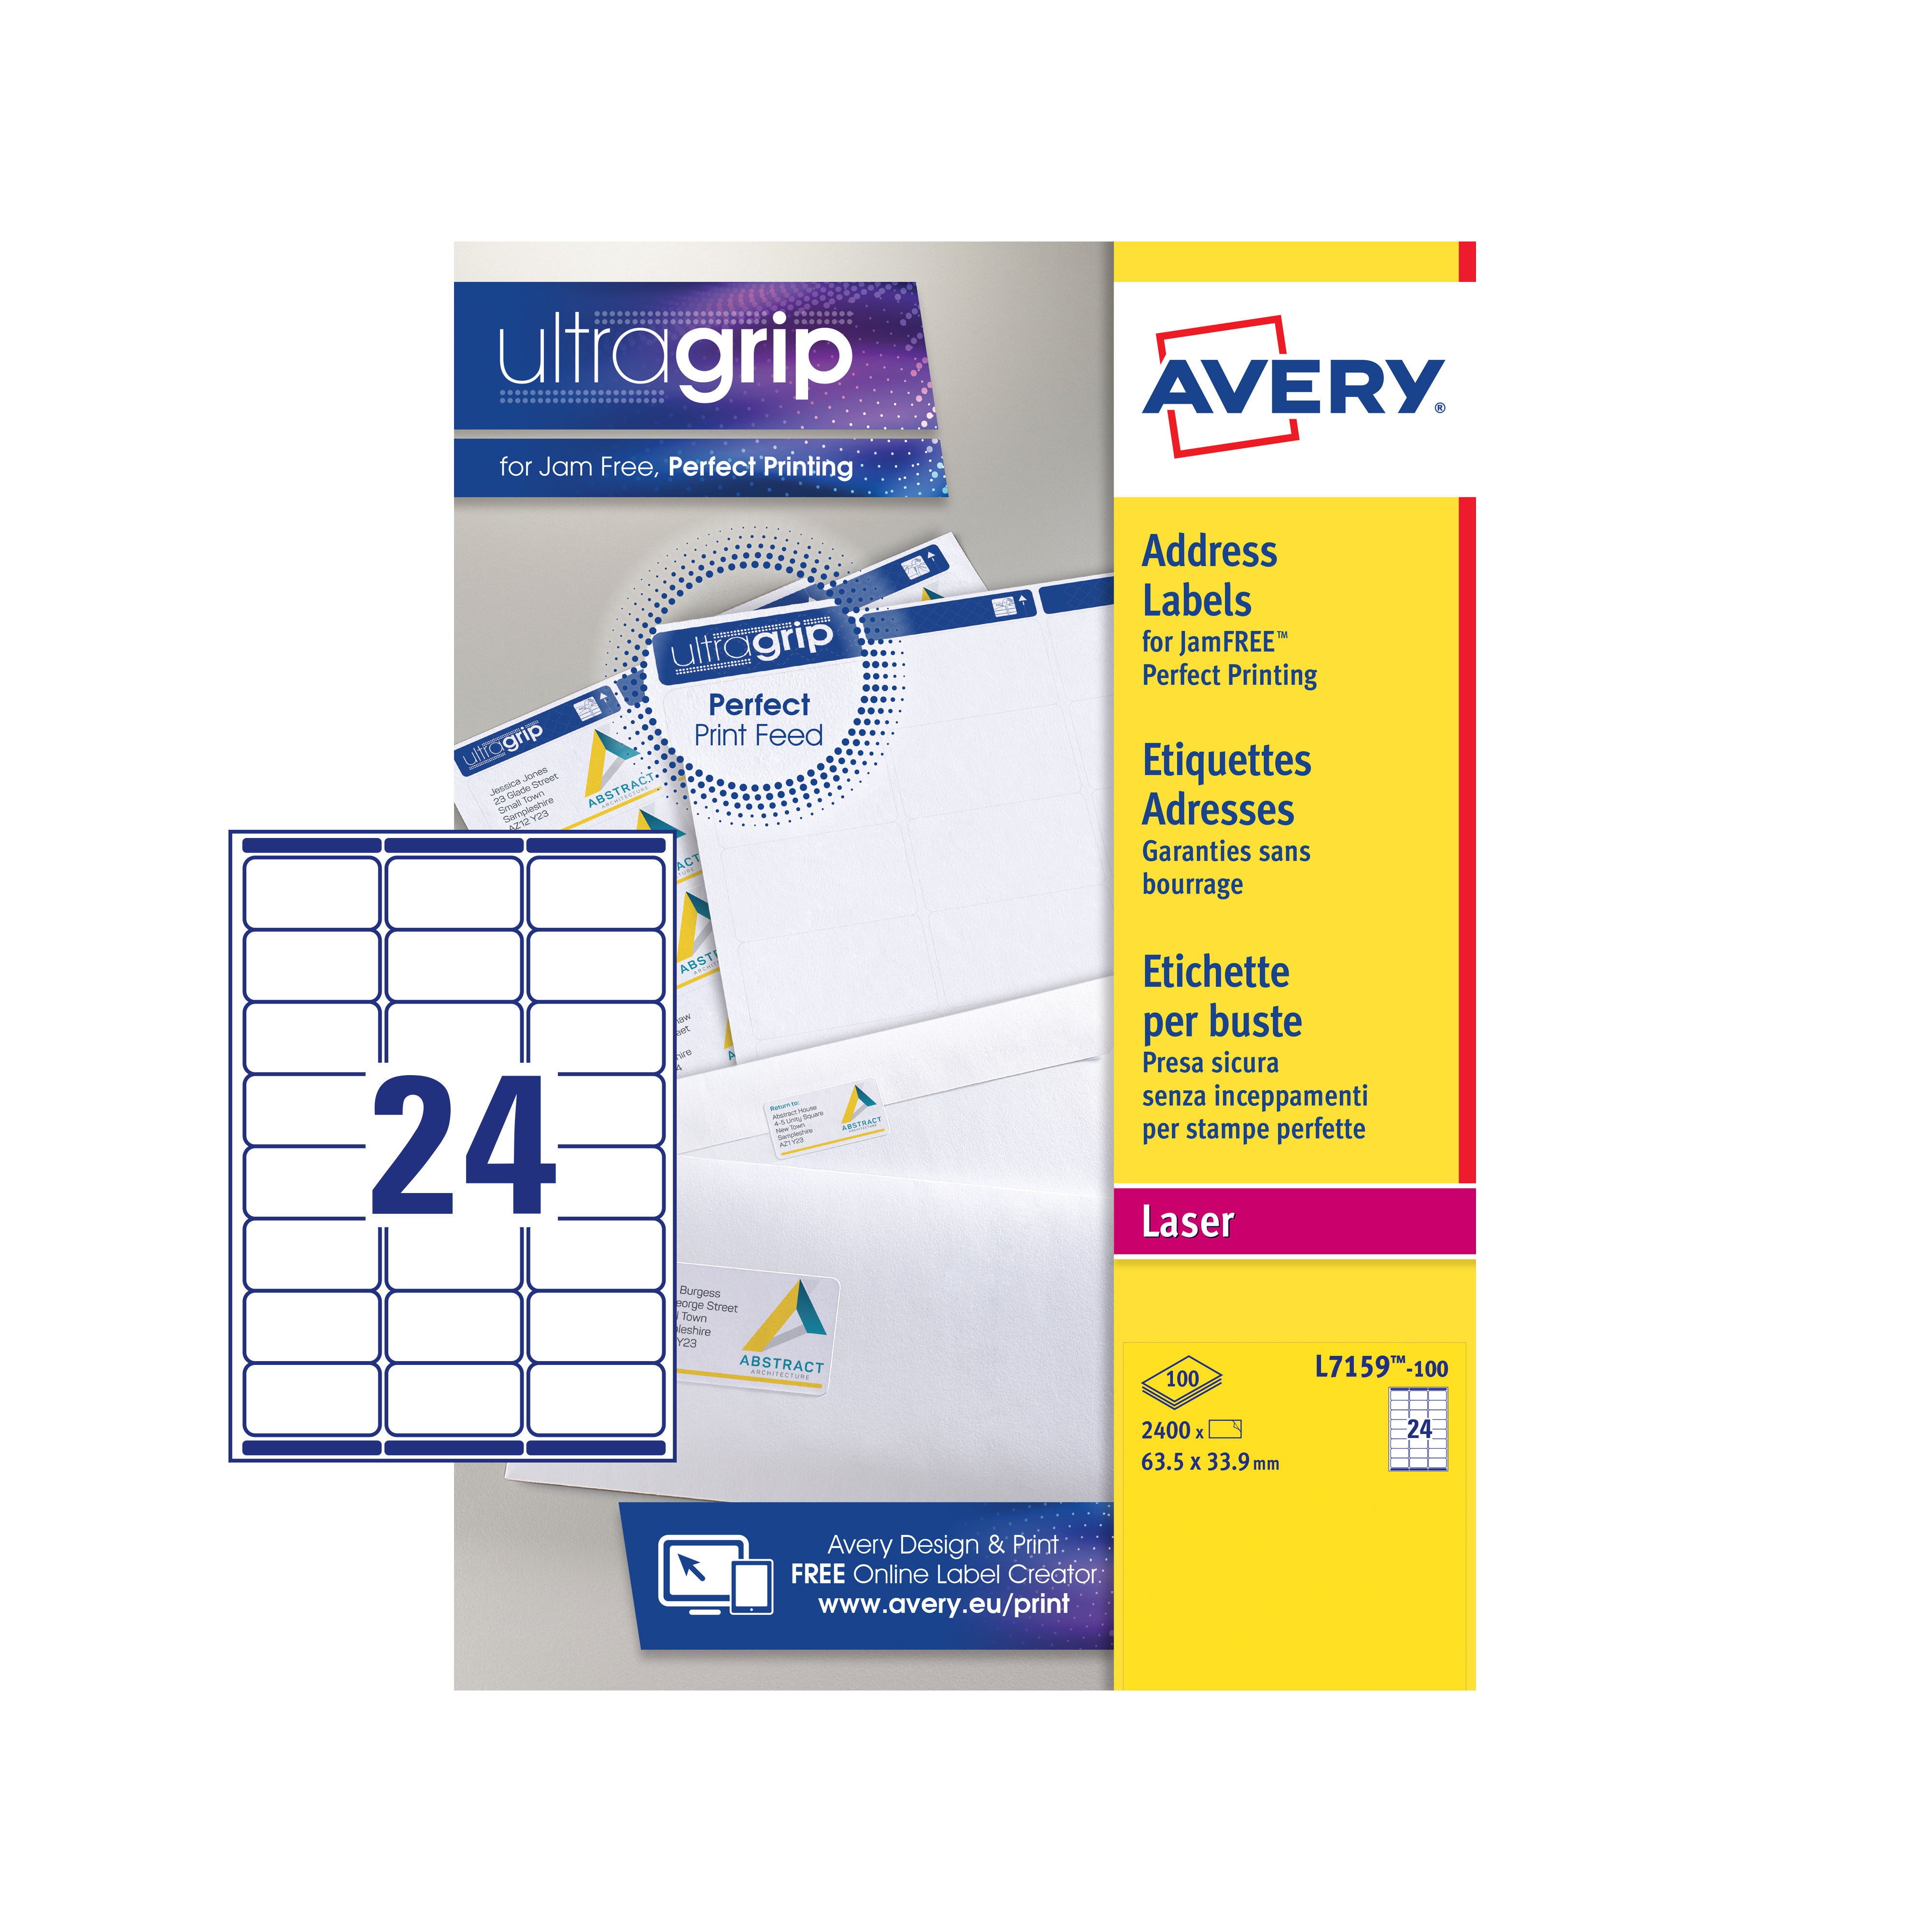 Avery Addressing Labels Laser Jam-free 24 per Sheet 63.5x33.9mm White Ref L7159-100 2400 Labels